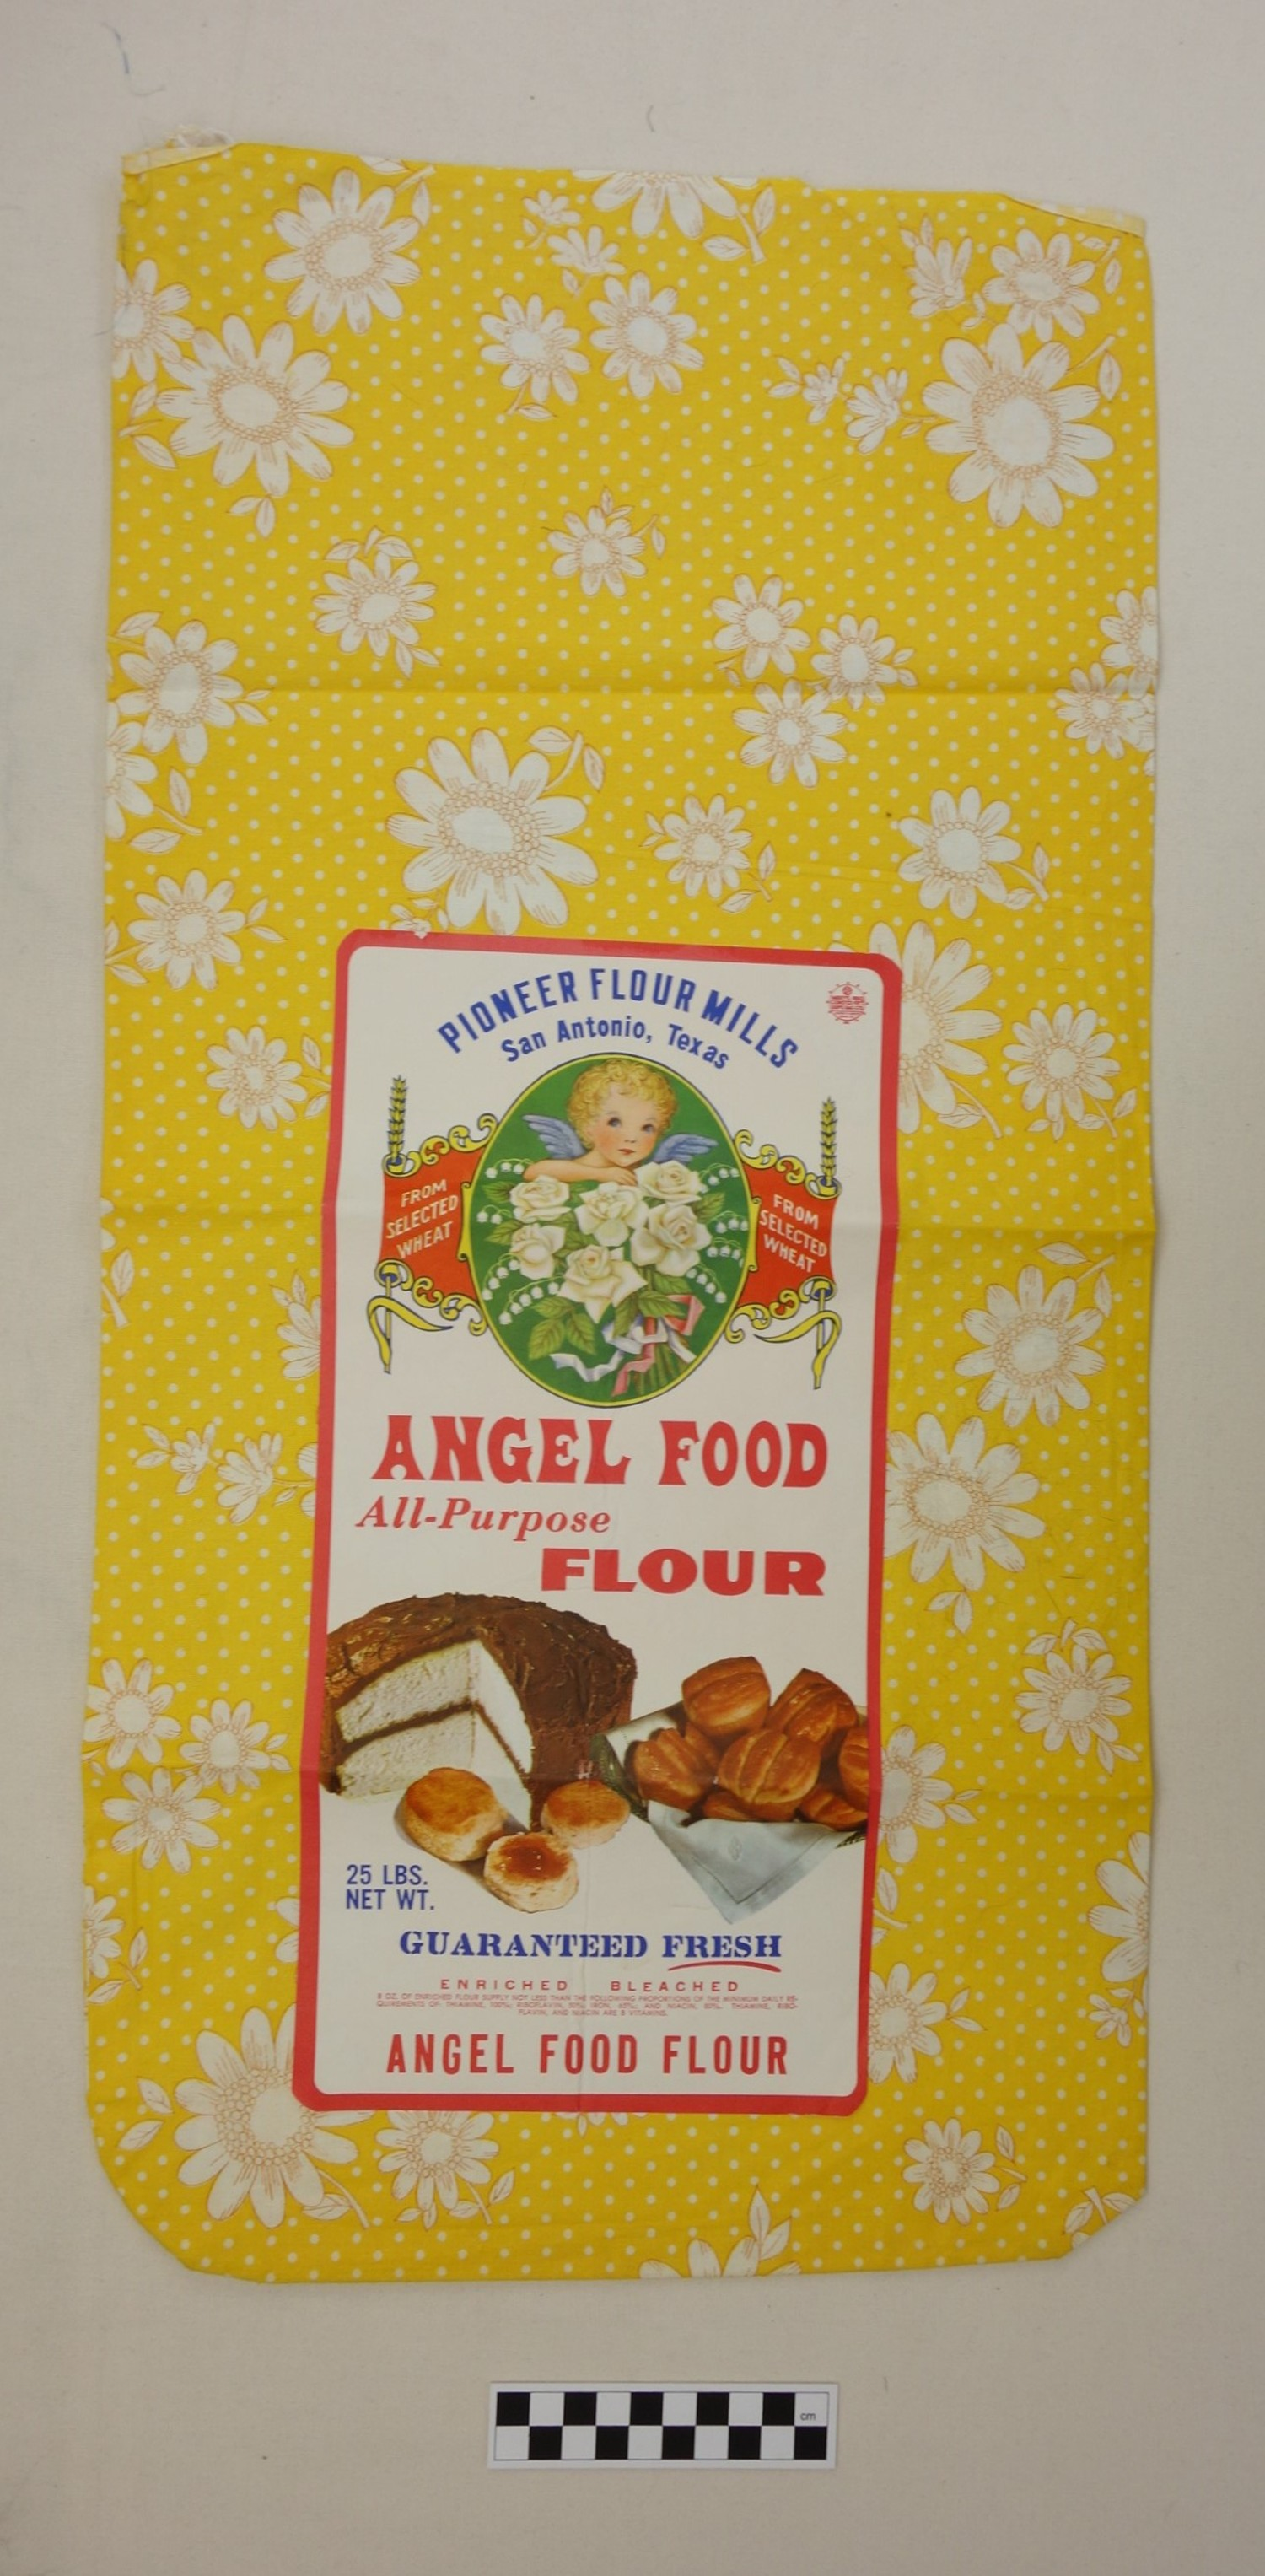 Flour sack made from bright yellow cloth with printed flowers, to be used for clothing or other domestic textiles. USA, 1960s (TRC 2017.2403).